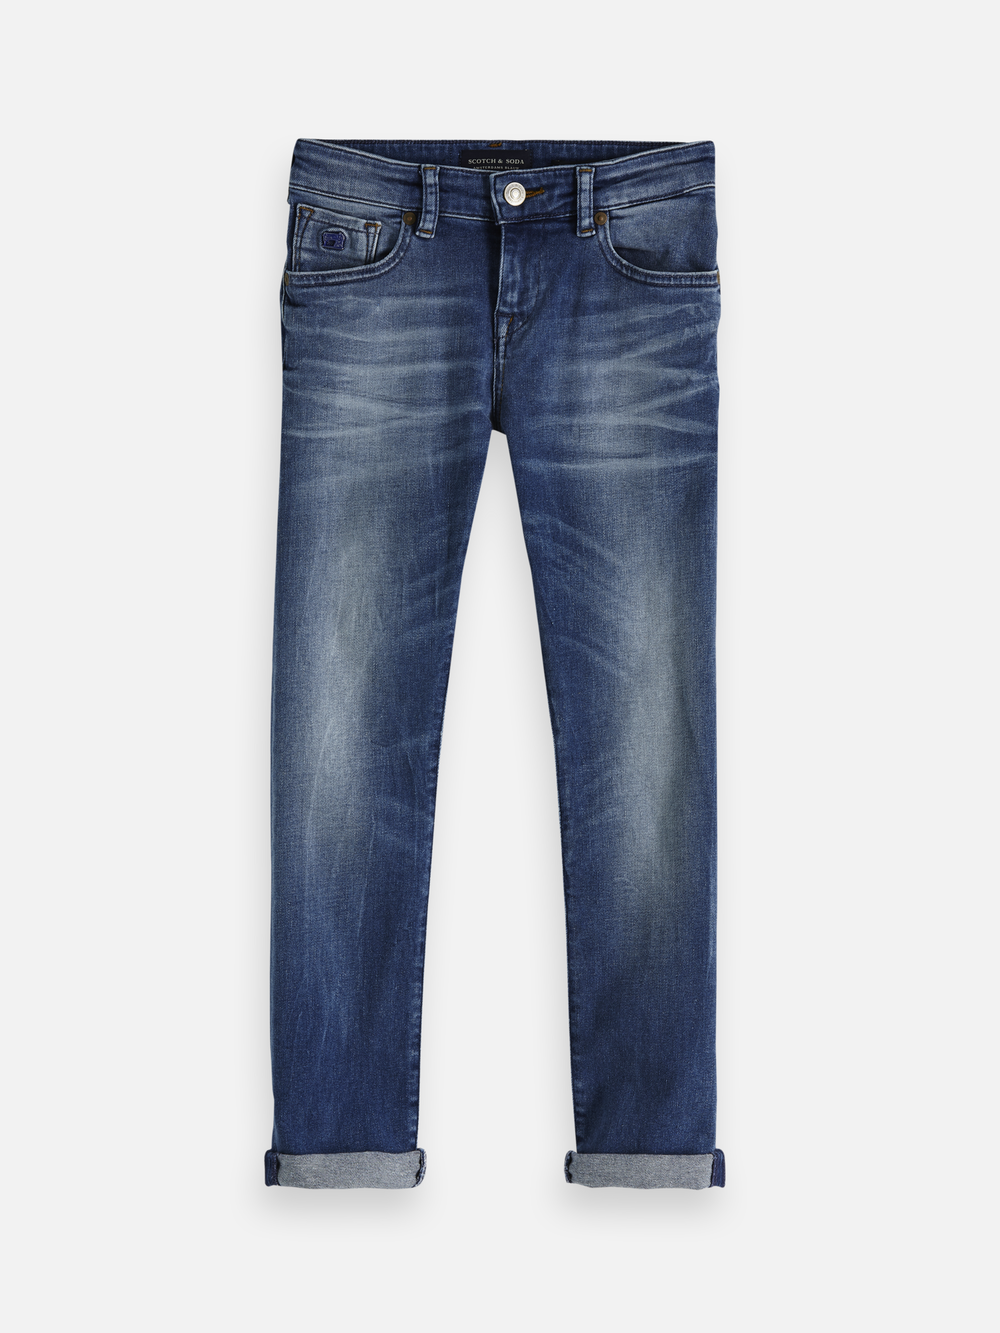 Artikel klicken und genauer betrachten! - The Strummer is our skinny fit denim.  These mid-blue jeans are made from comfort stretch denim and feature bleach and spray effects for a faded look. | im Online Shop kaufen